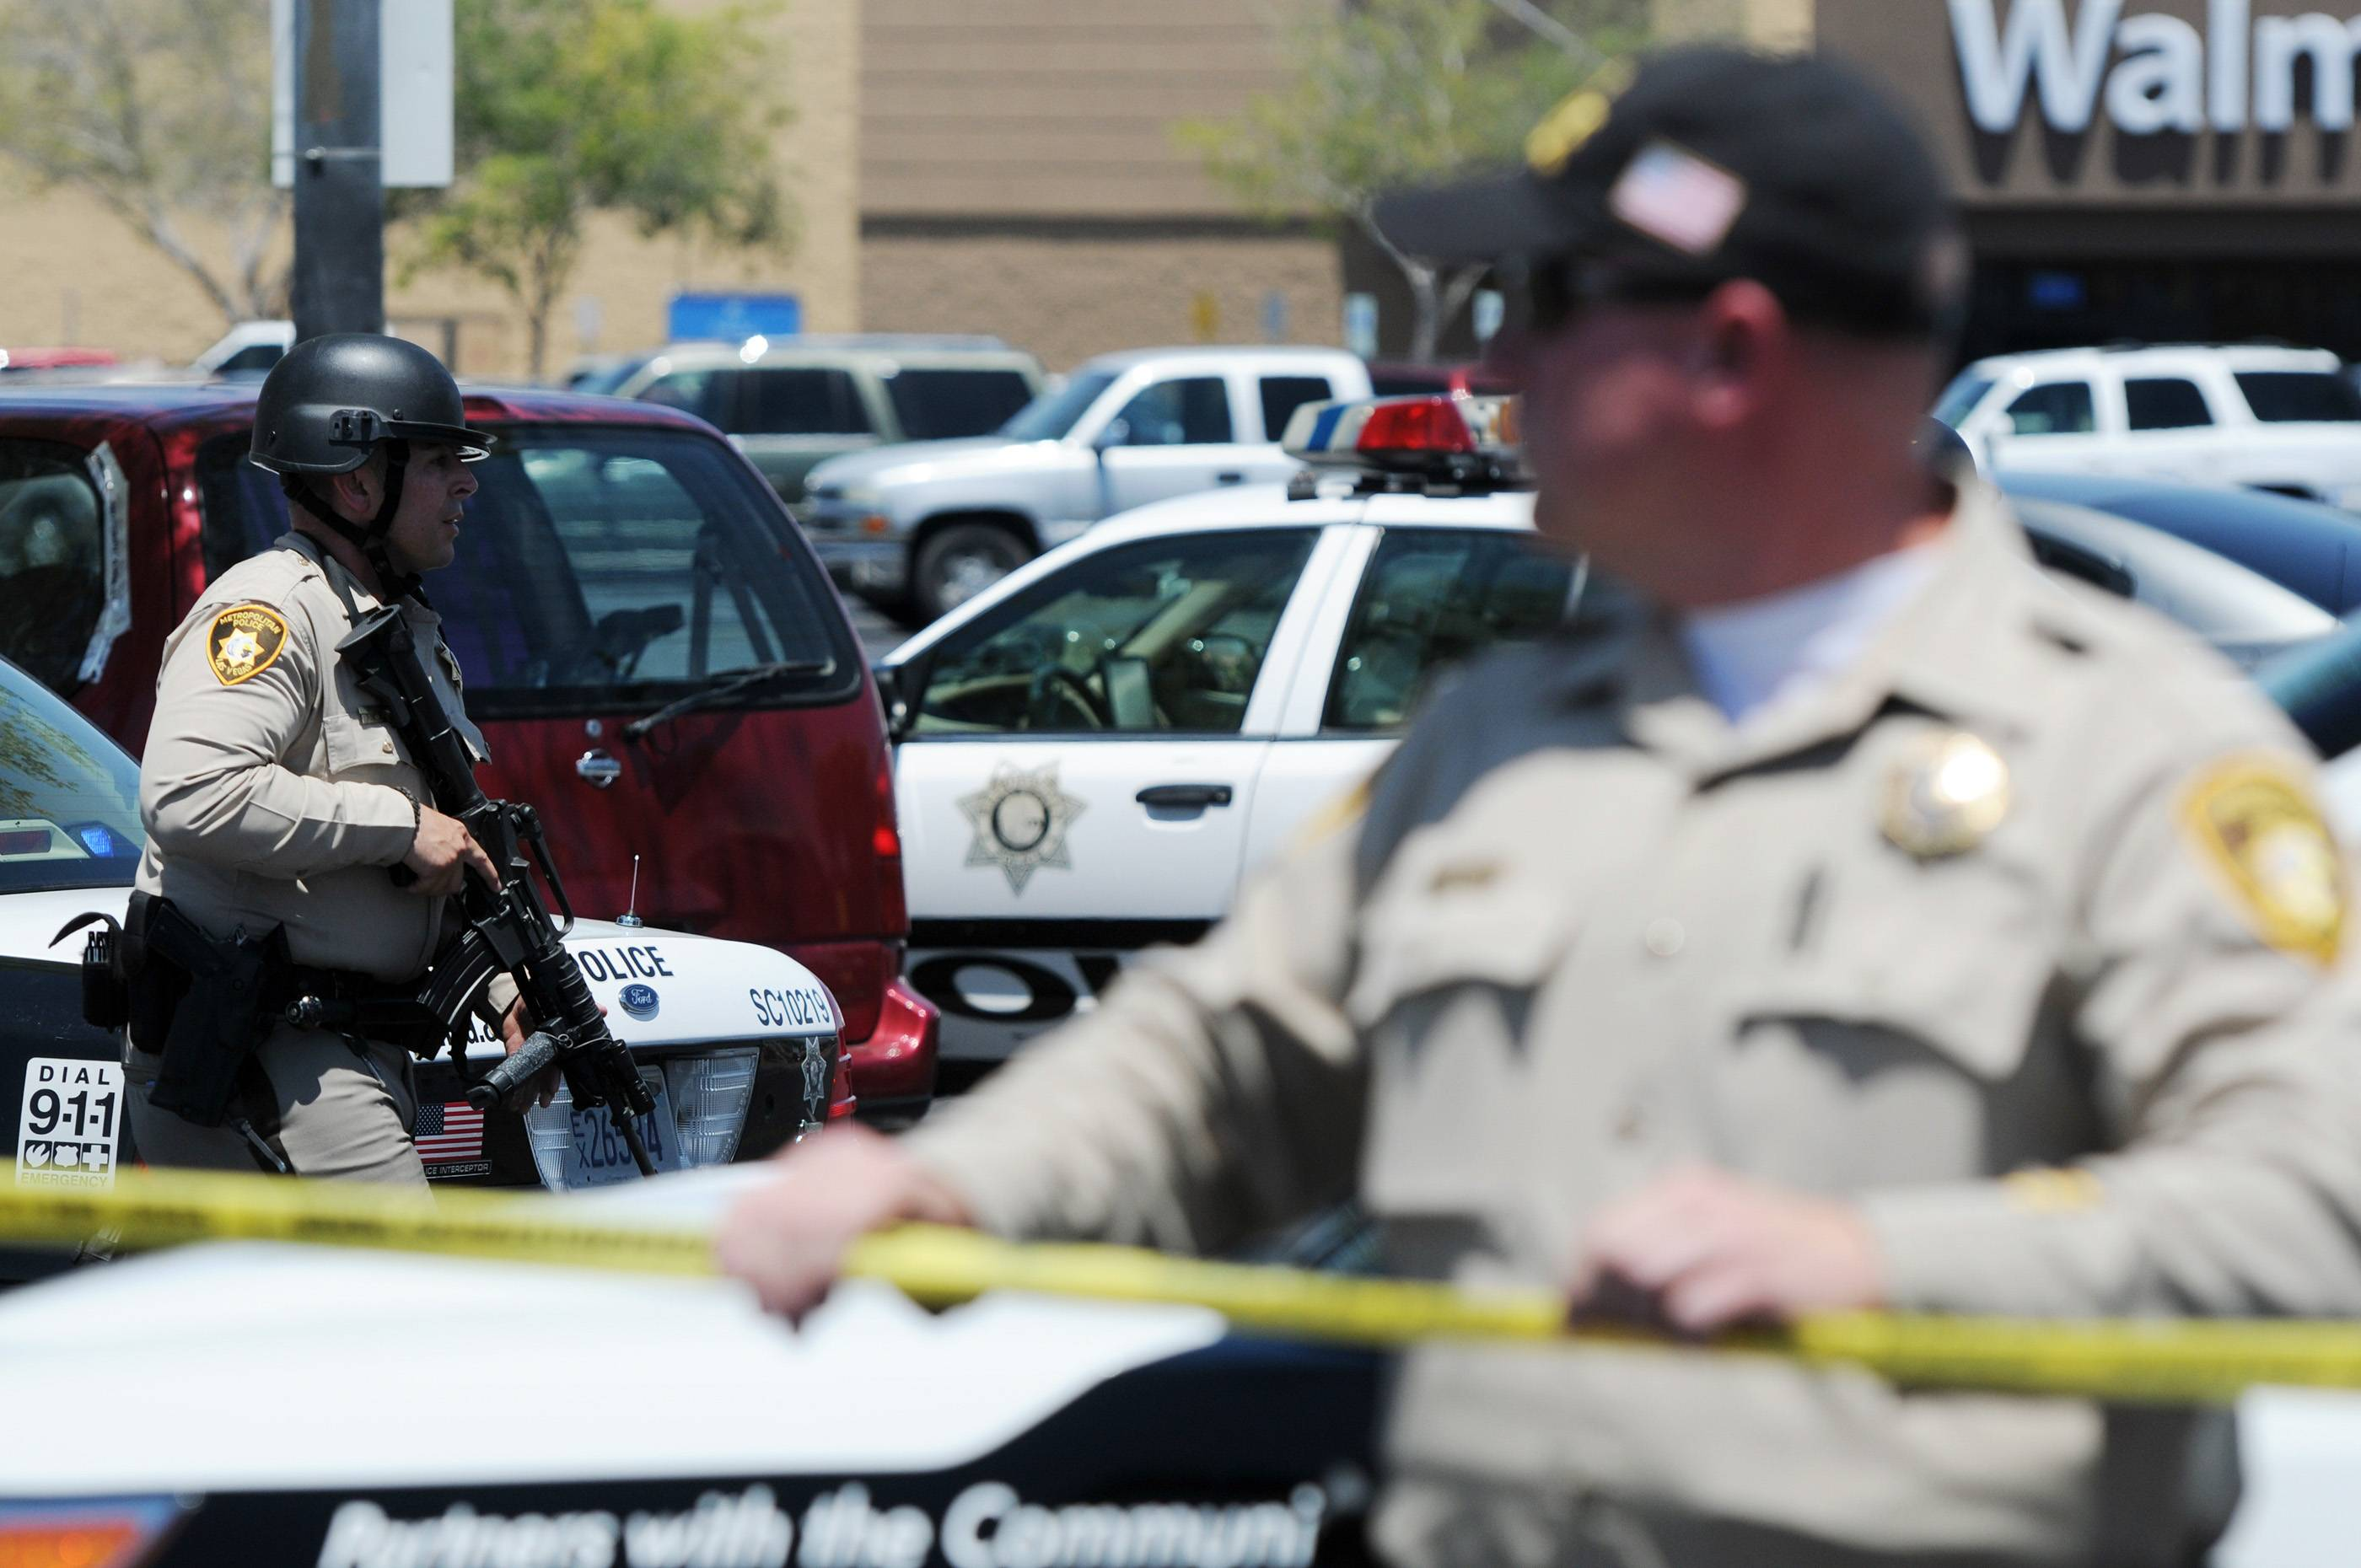 Las Vegas police officers are near the scene of a shooting Sunday in Las Vegas. The spree began around 11:30 a.m. Sunday when a man and woman walked into CiCi's Pizza and shot and killed two officers who were eating lunch, Las Vegas police spokesman Larry Hadfield said.